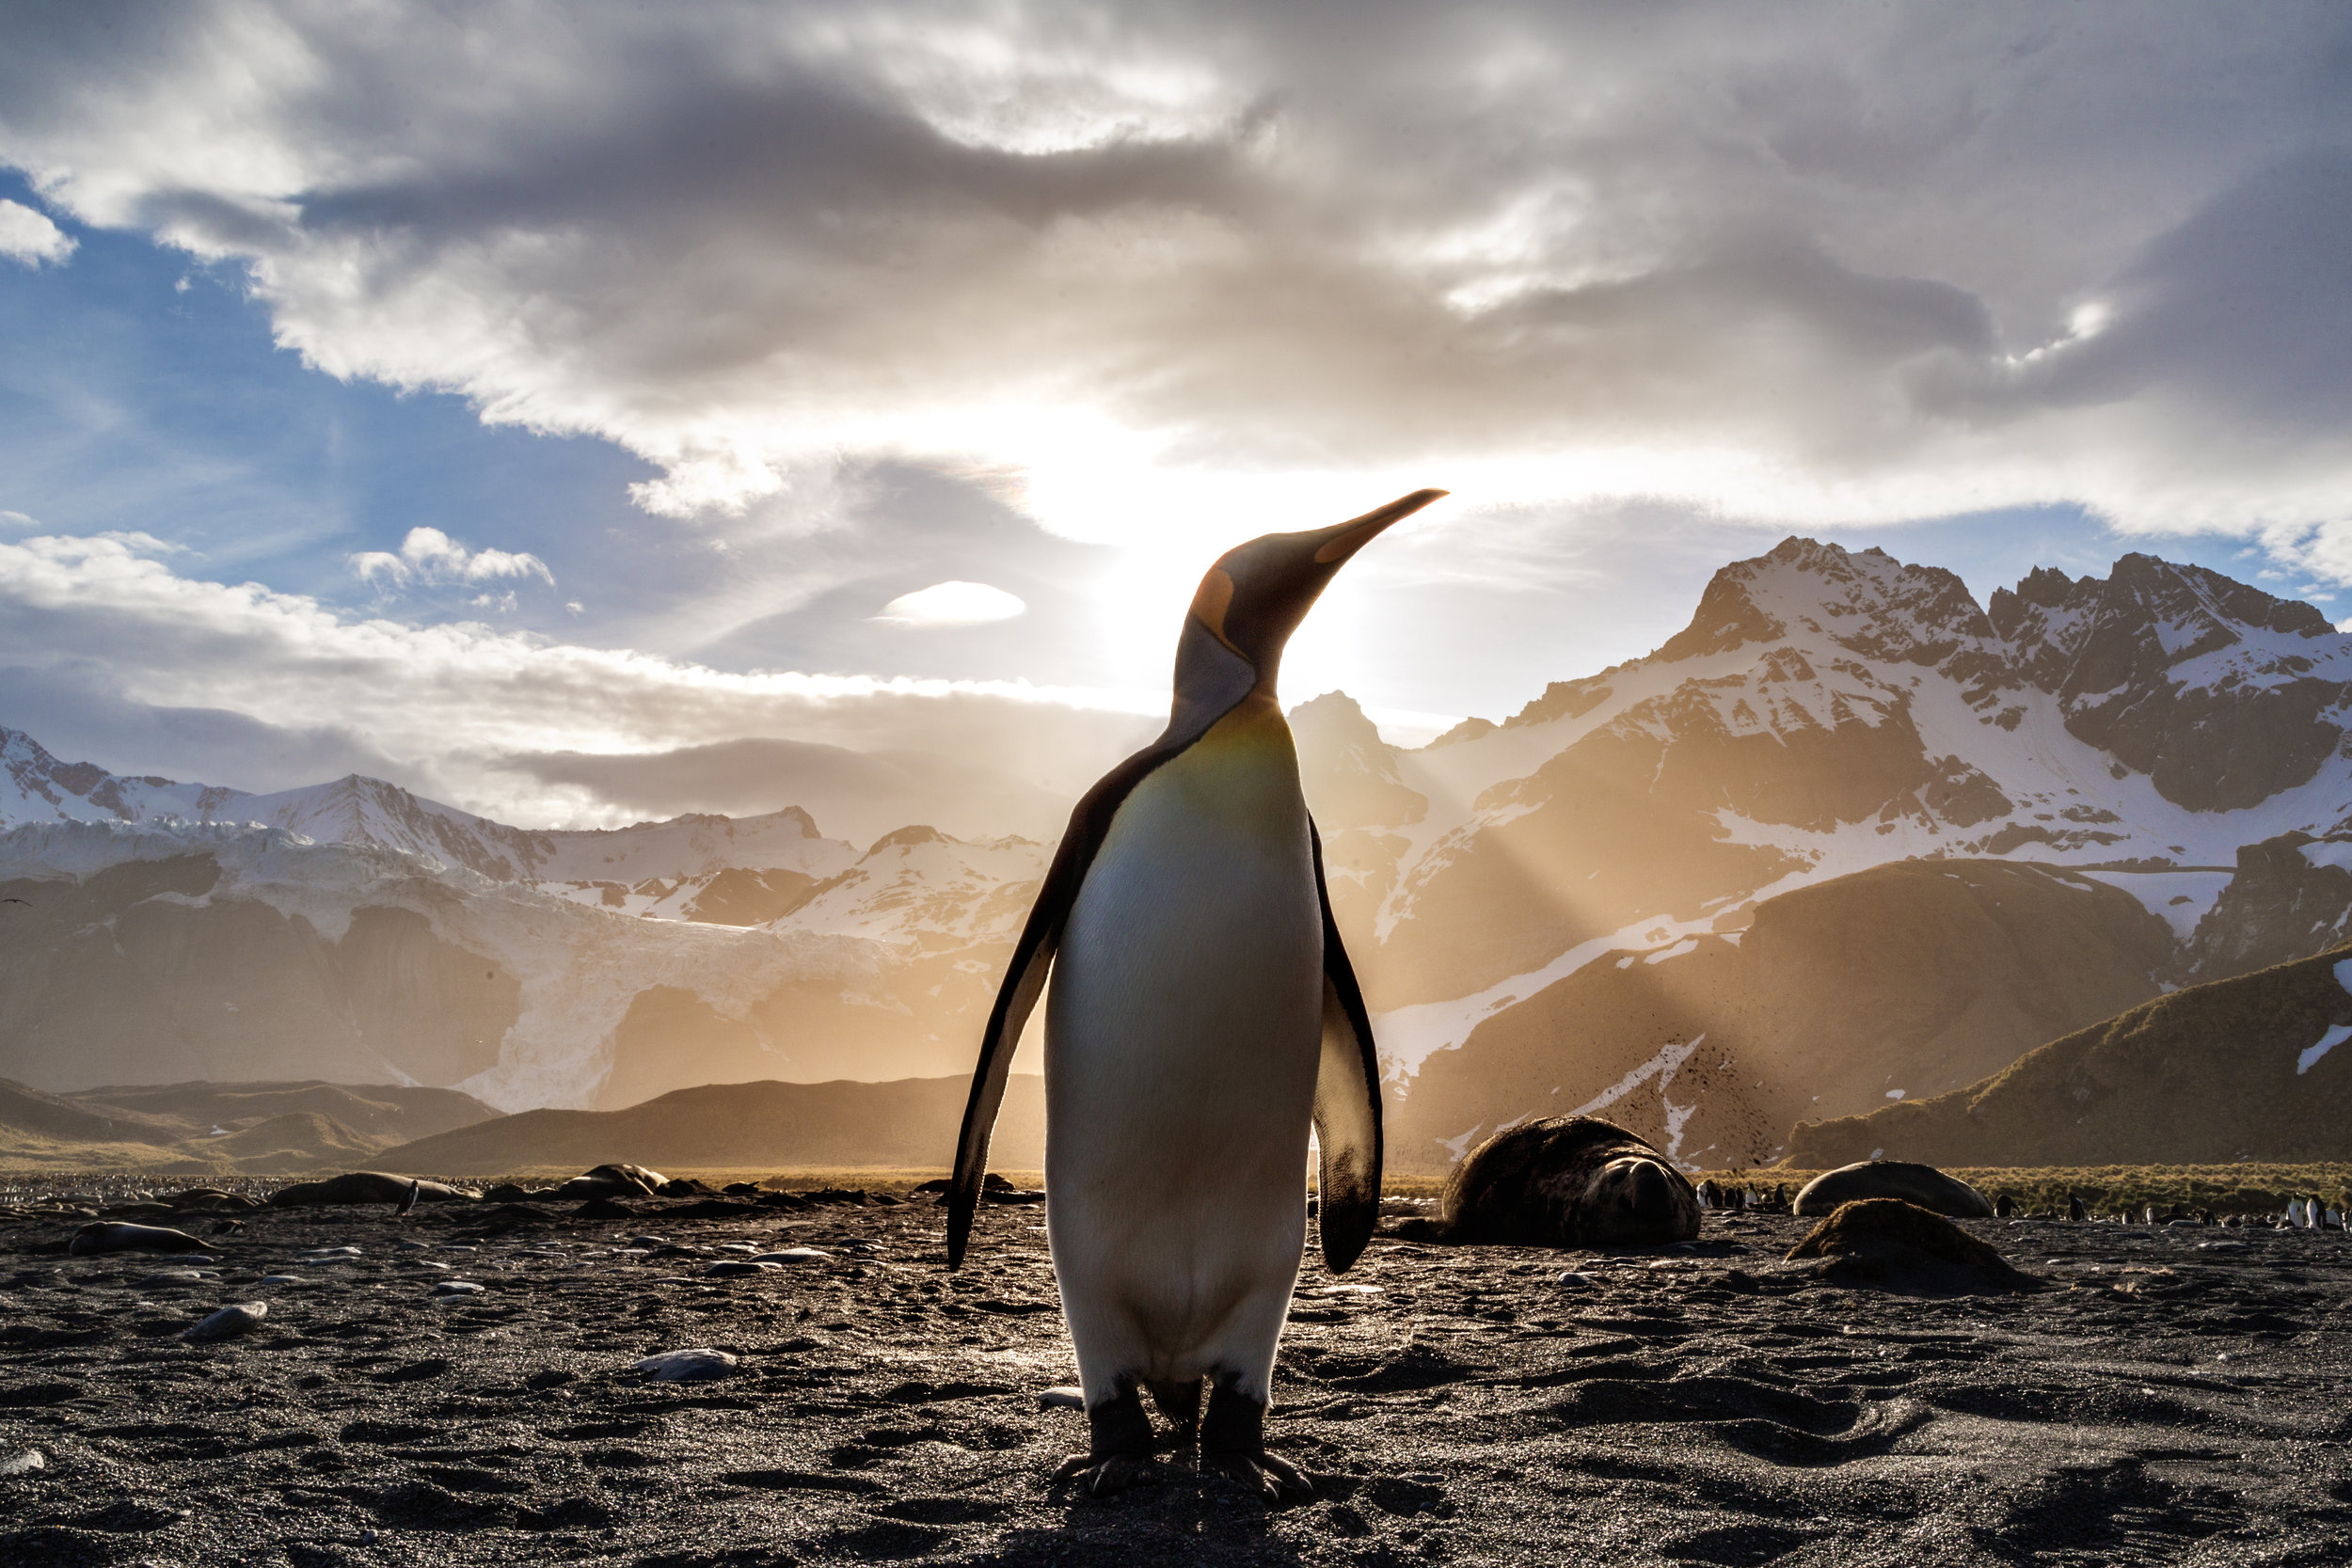 Ursula, a king penguin on South Georgia Island, must learn to stay safe as she ventures into the ocean for the first time.